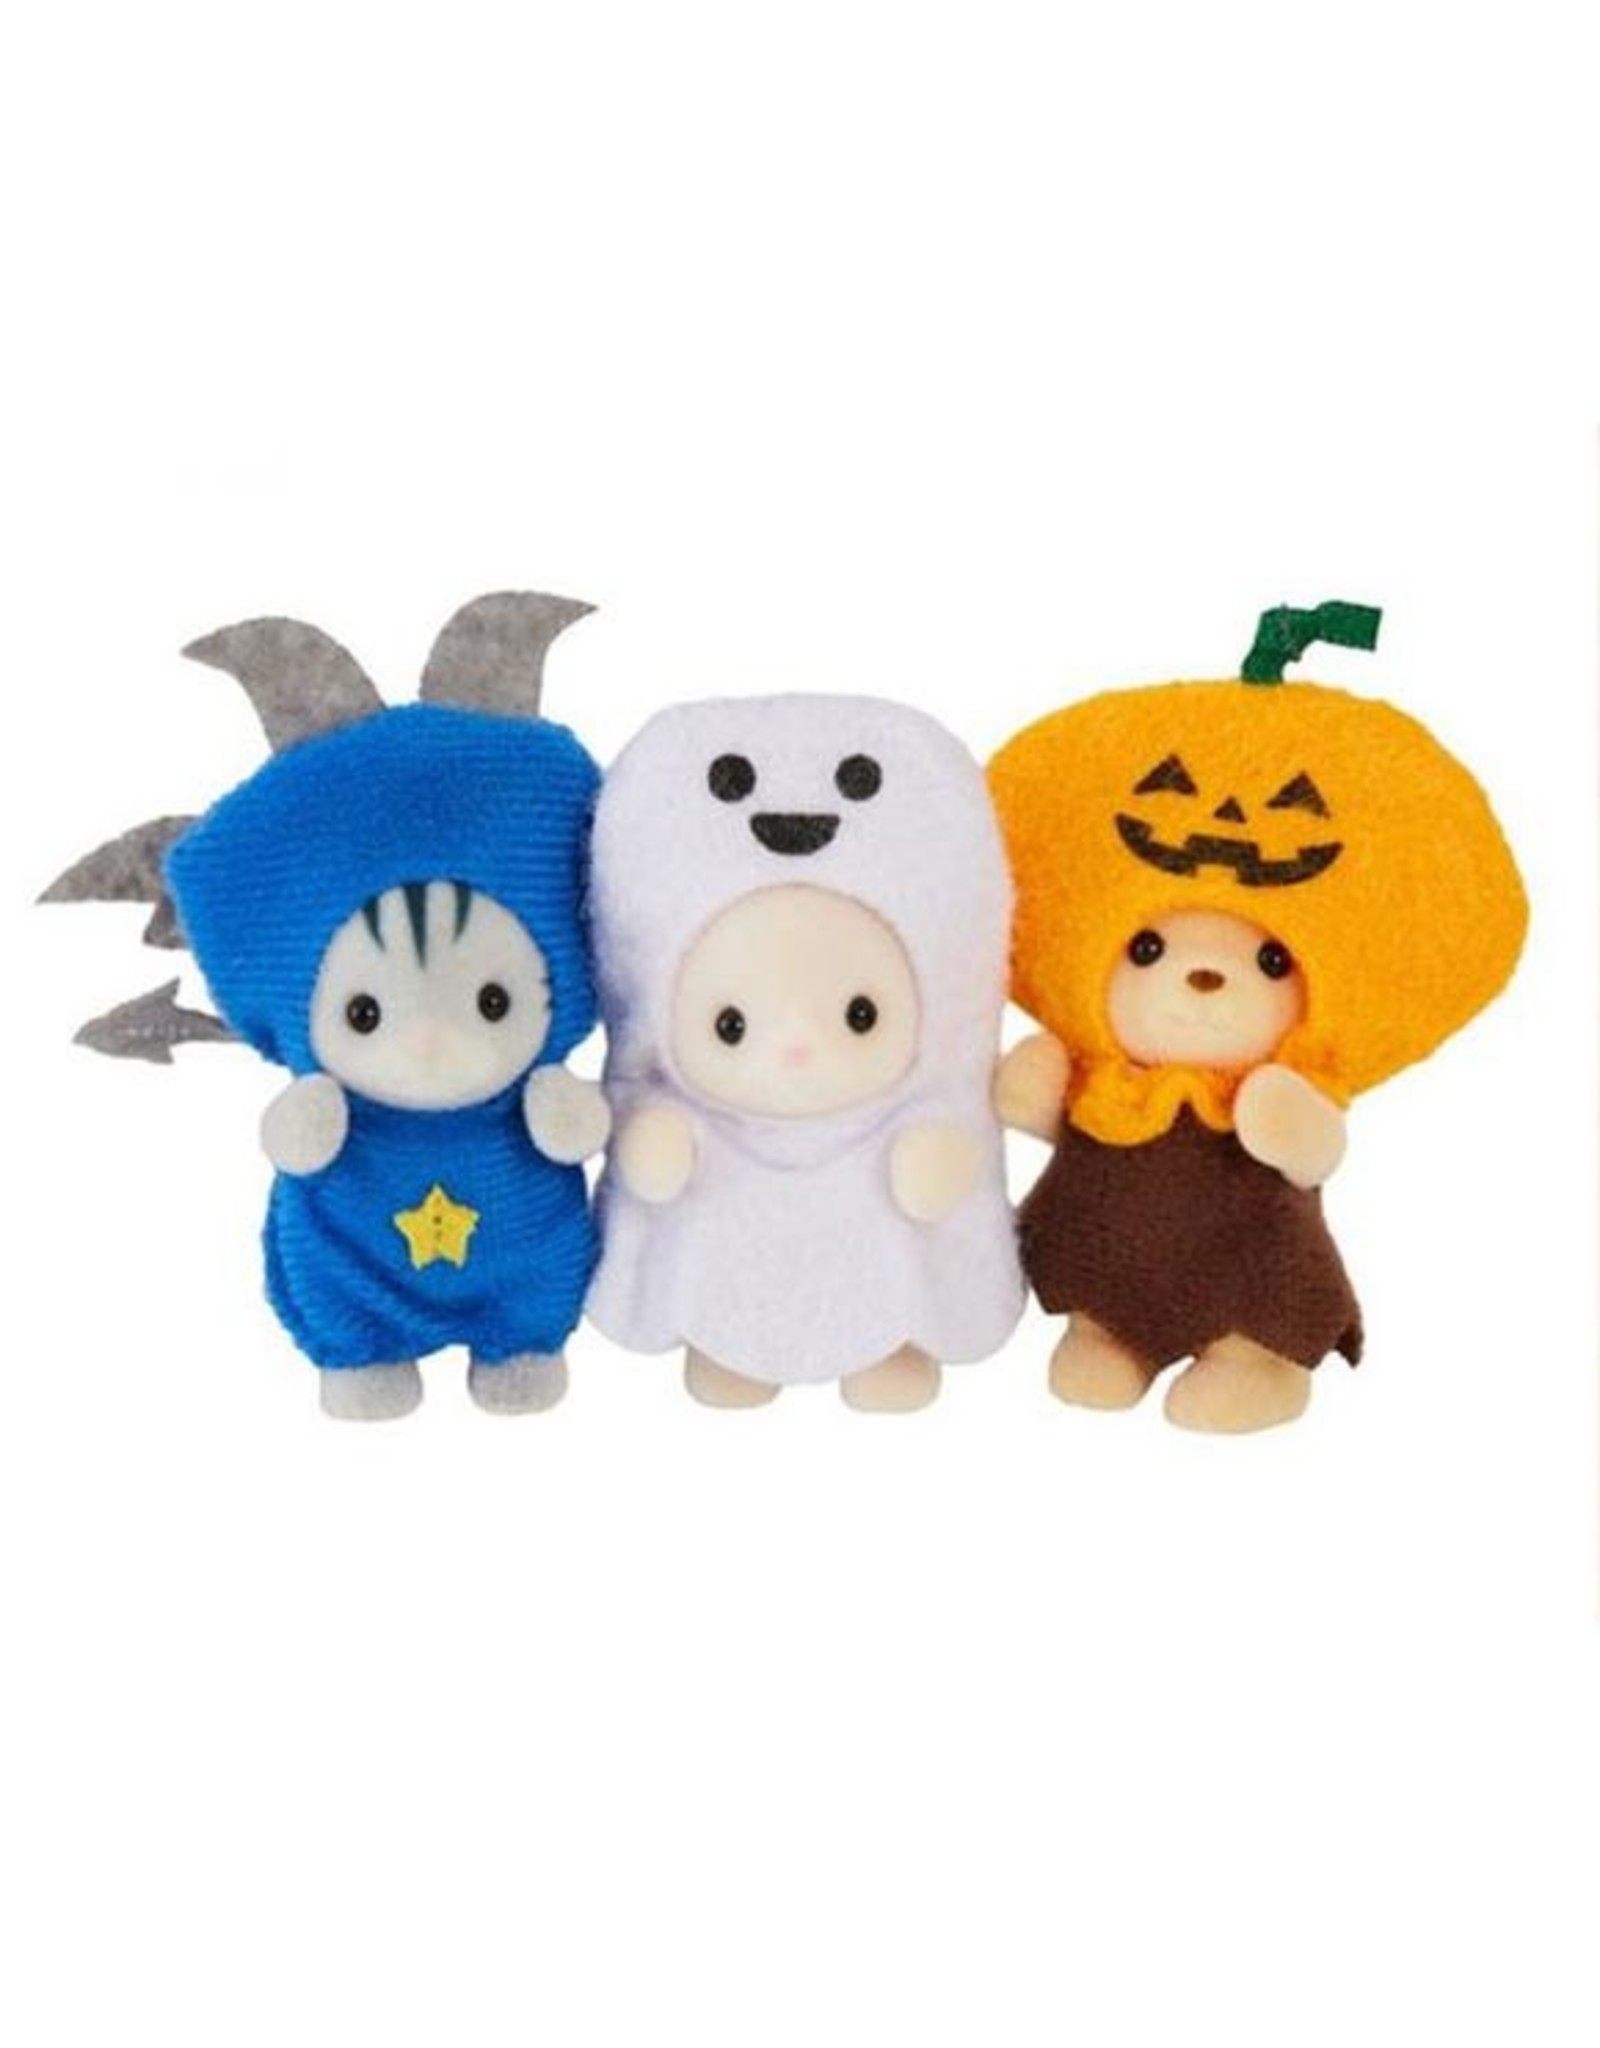 Calico Critters Calico Critters Trick or Treat Trio - Limited Edition Seasonal Set